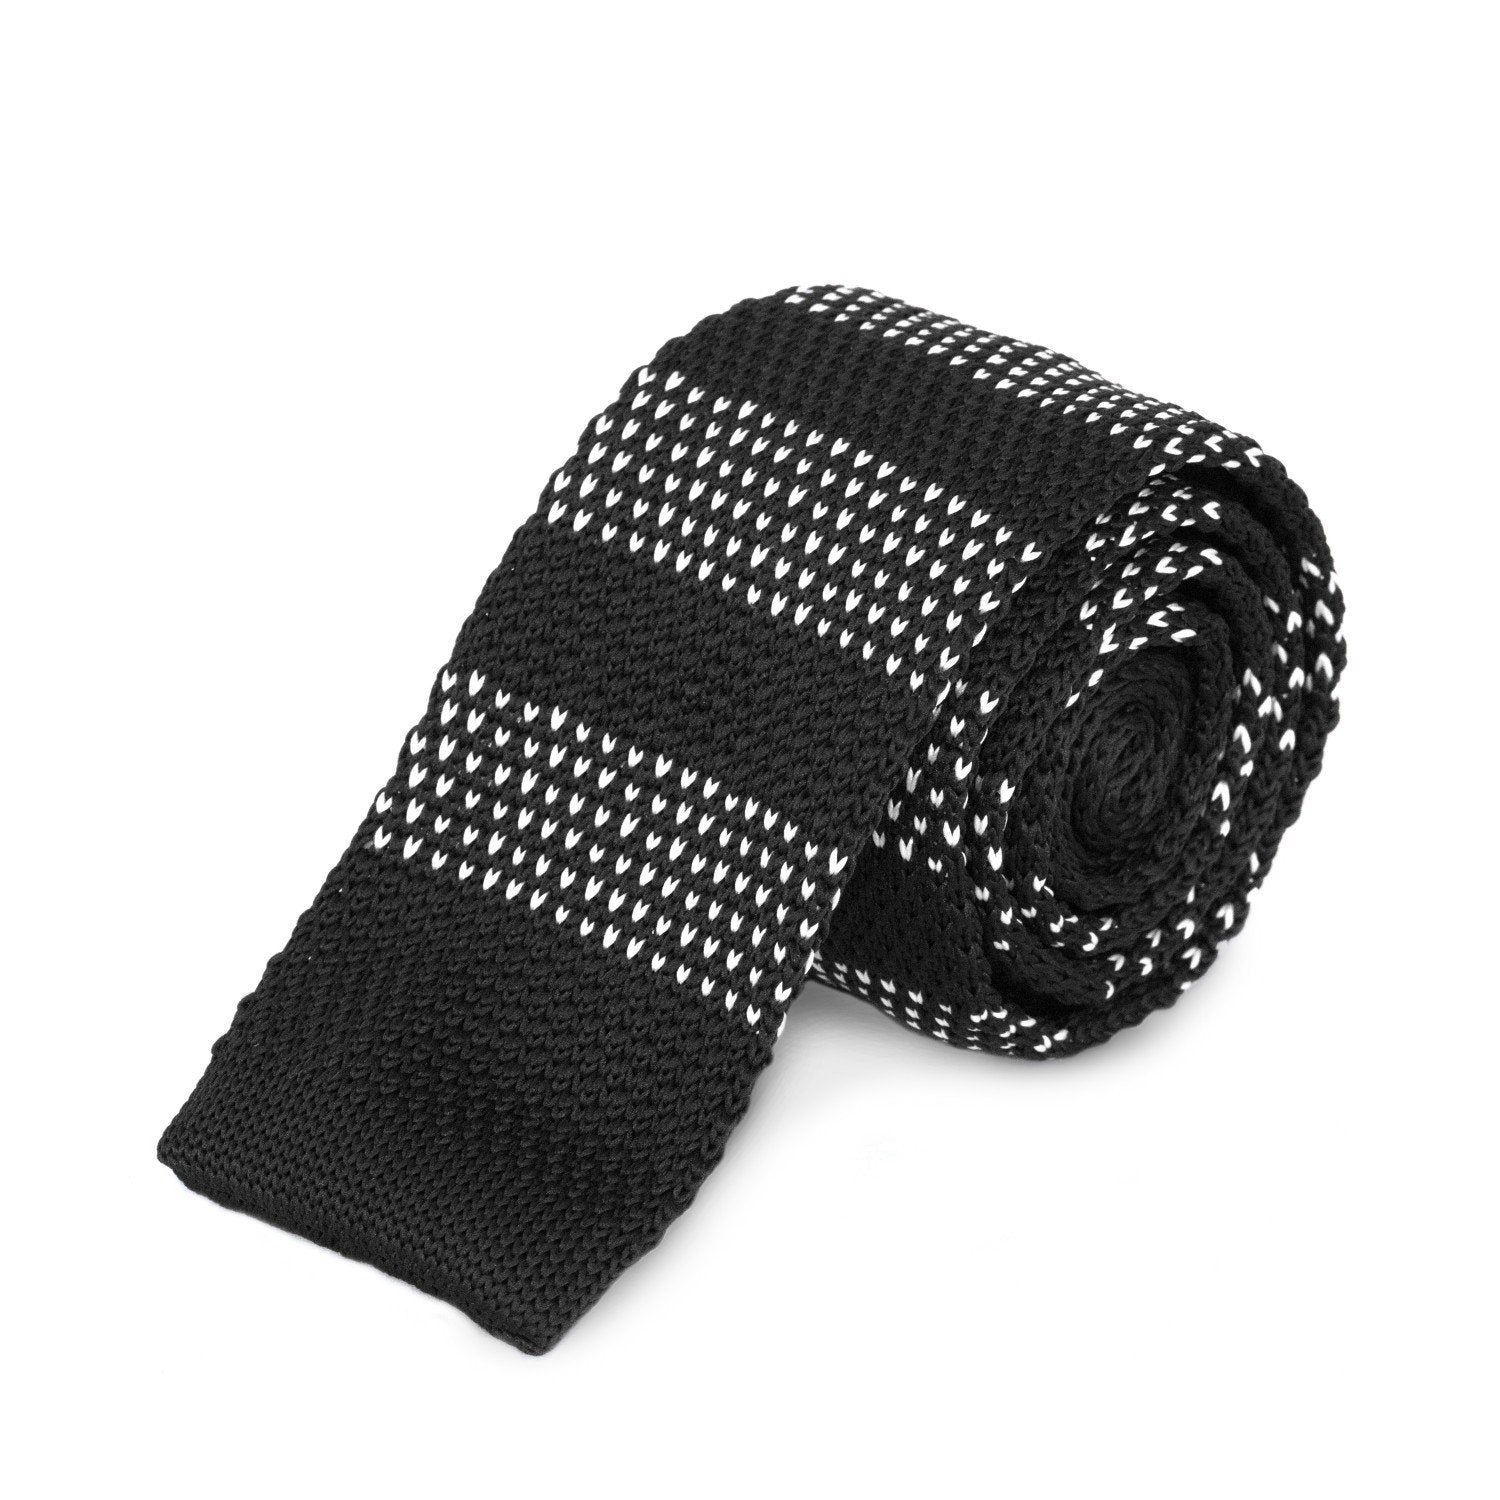 Black and White Stripe knit Tie Ties Cuffed.com.au